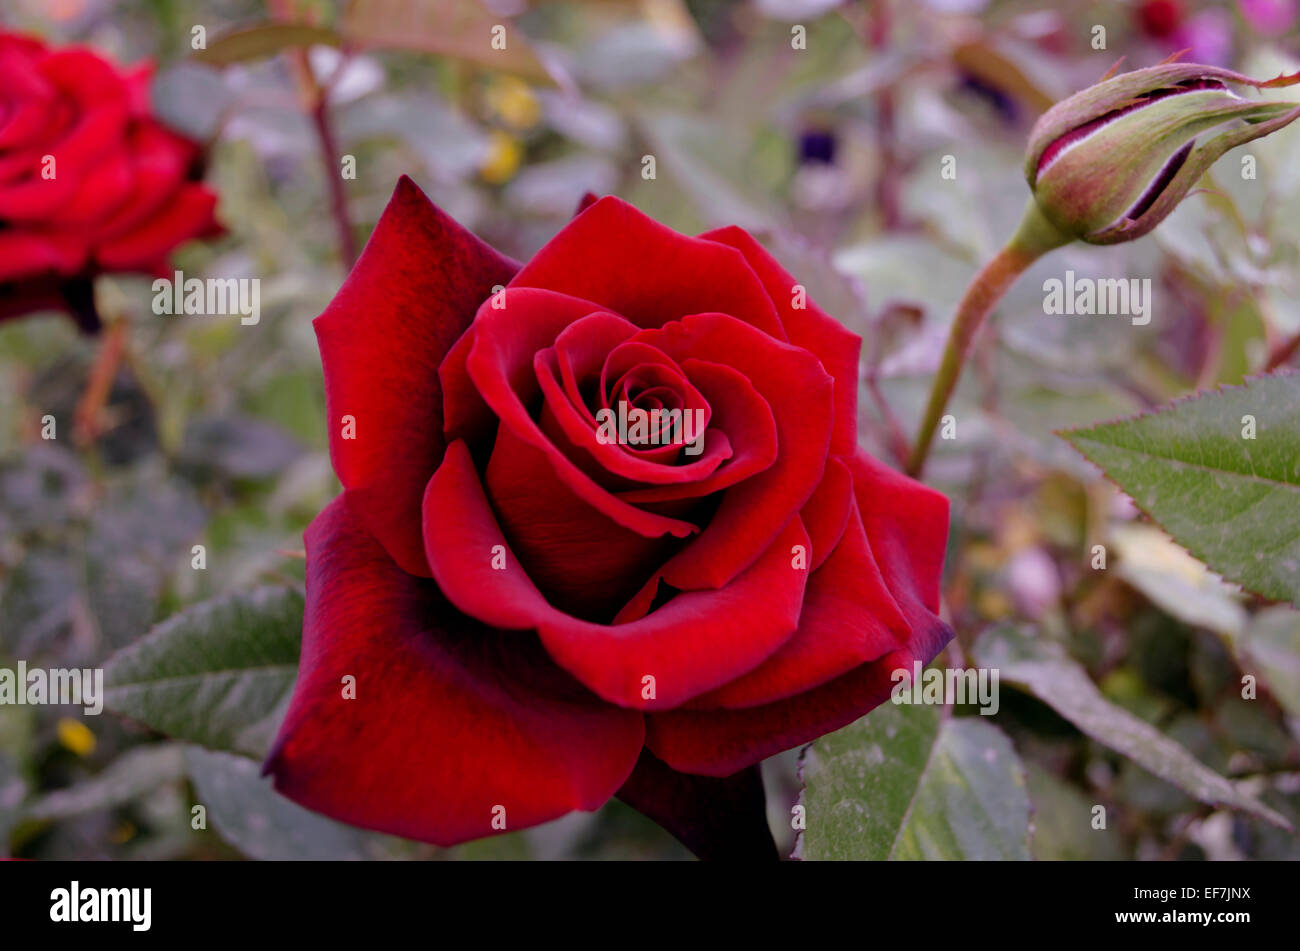 Dark red rose with black veins on the petals - Stock Image